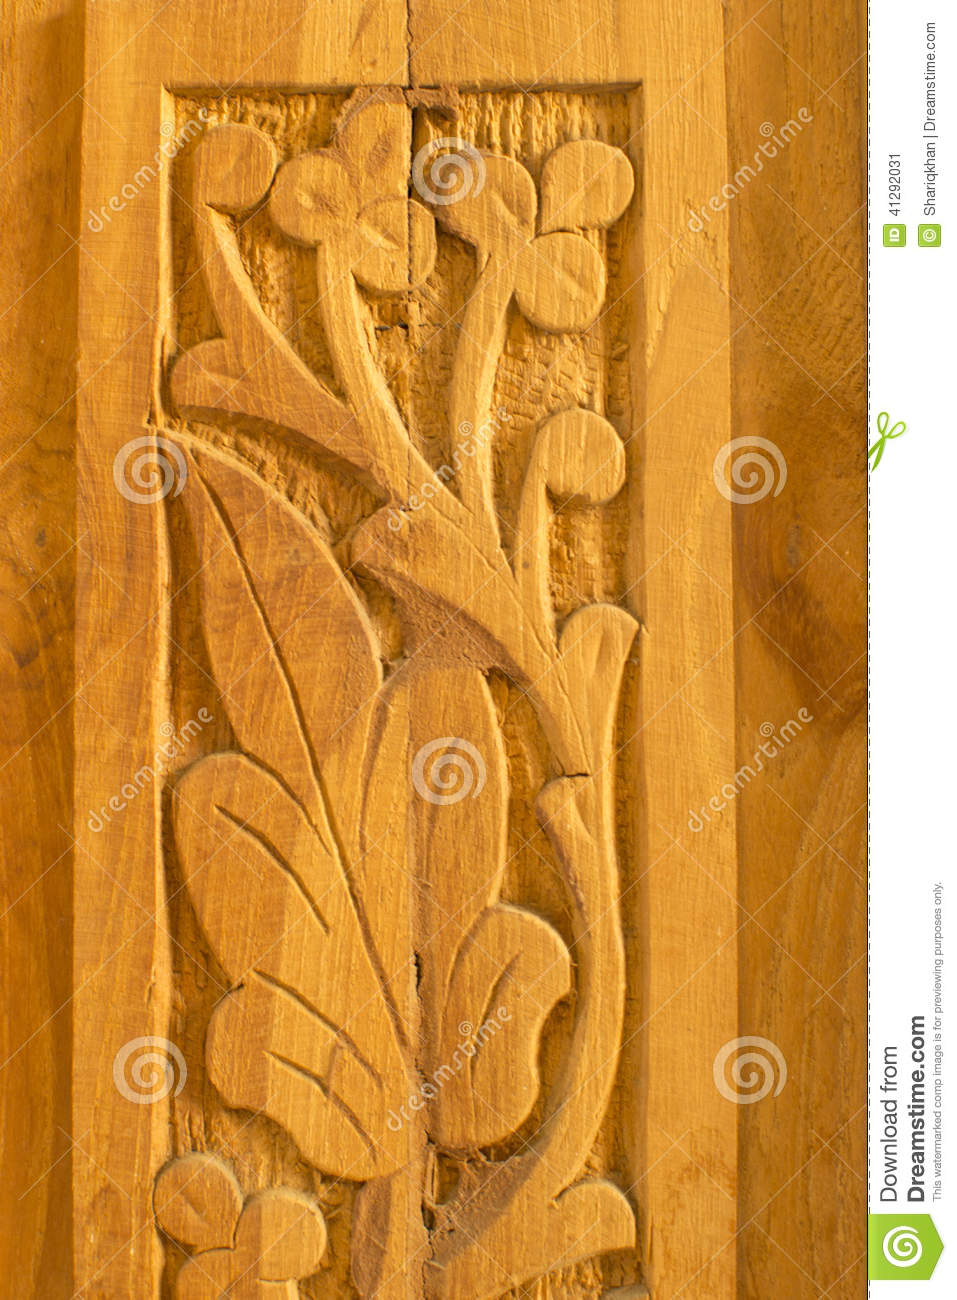 Wood carving art and pattern stock image image of motif for Wood decoration patterns